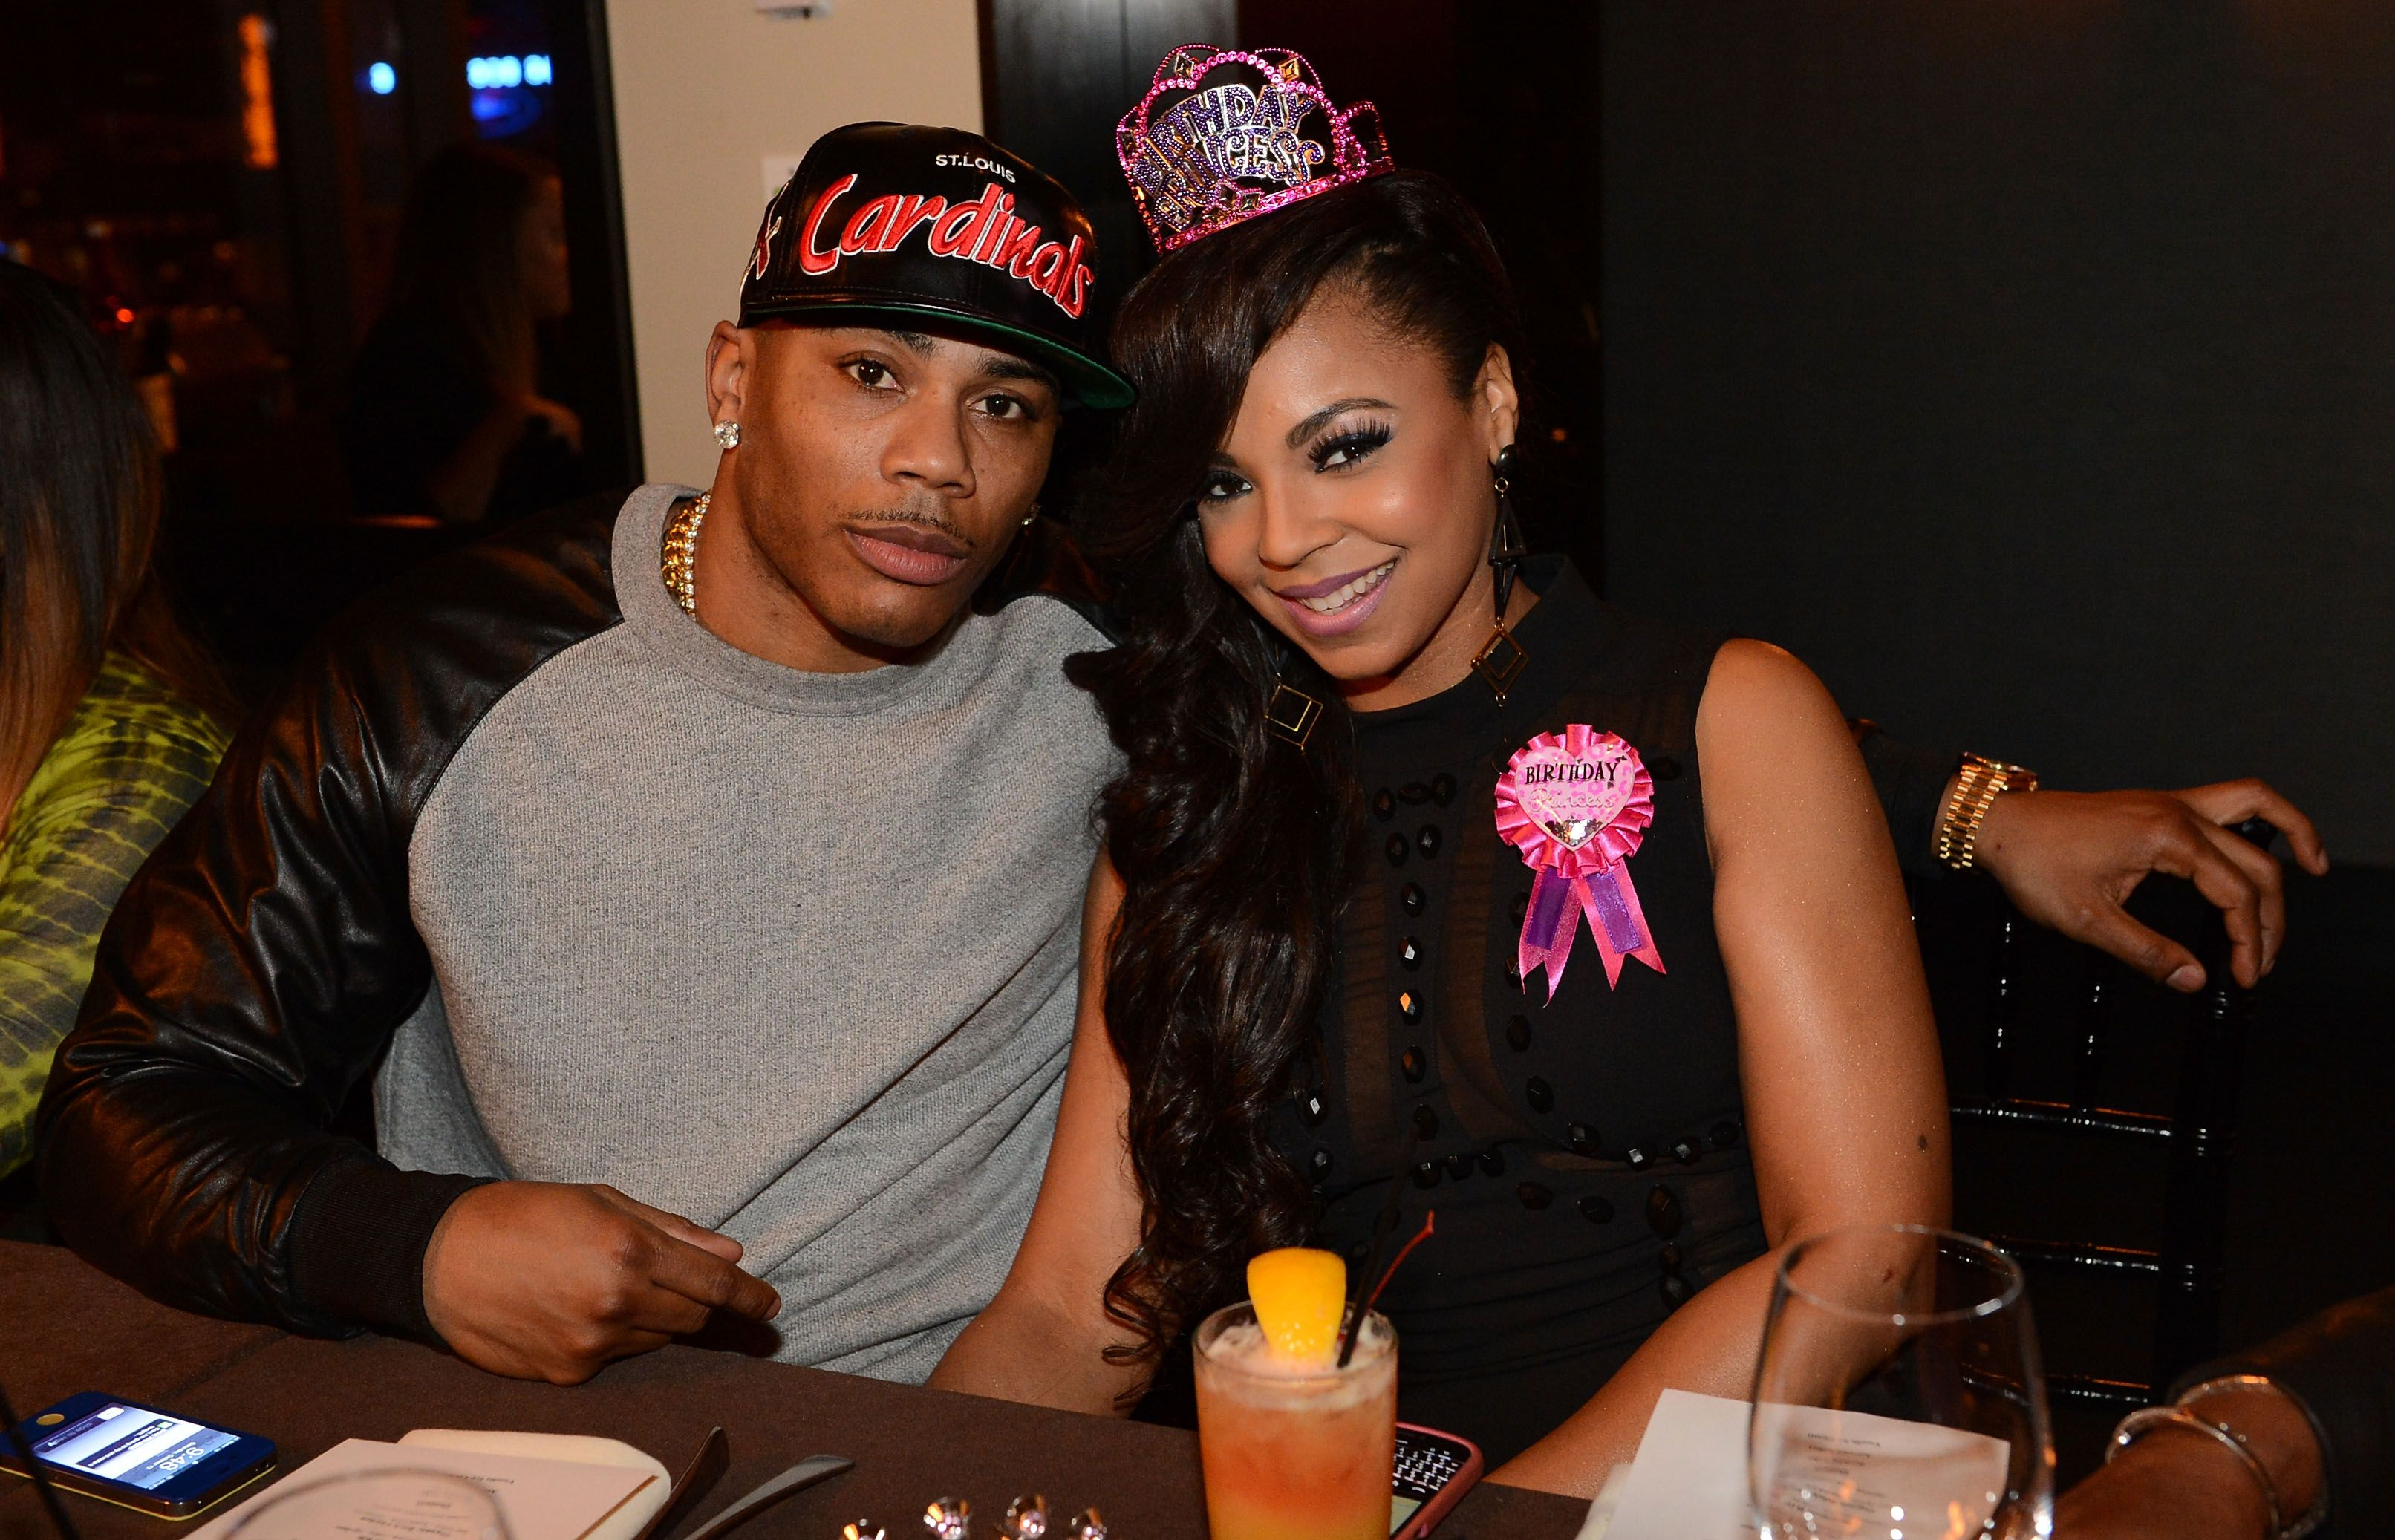 Nelly and Ashanti during Ashanti's surprise birthday dinner in October 2012 in Atlanta, Georgia | Source: Getty Images